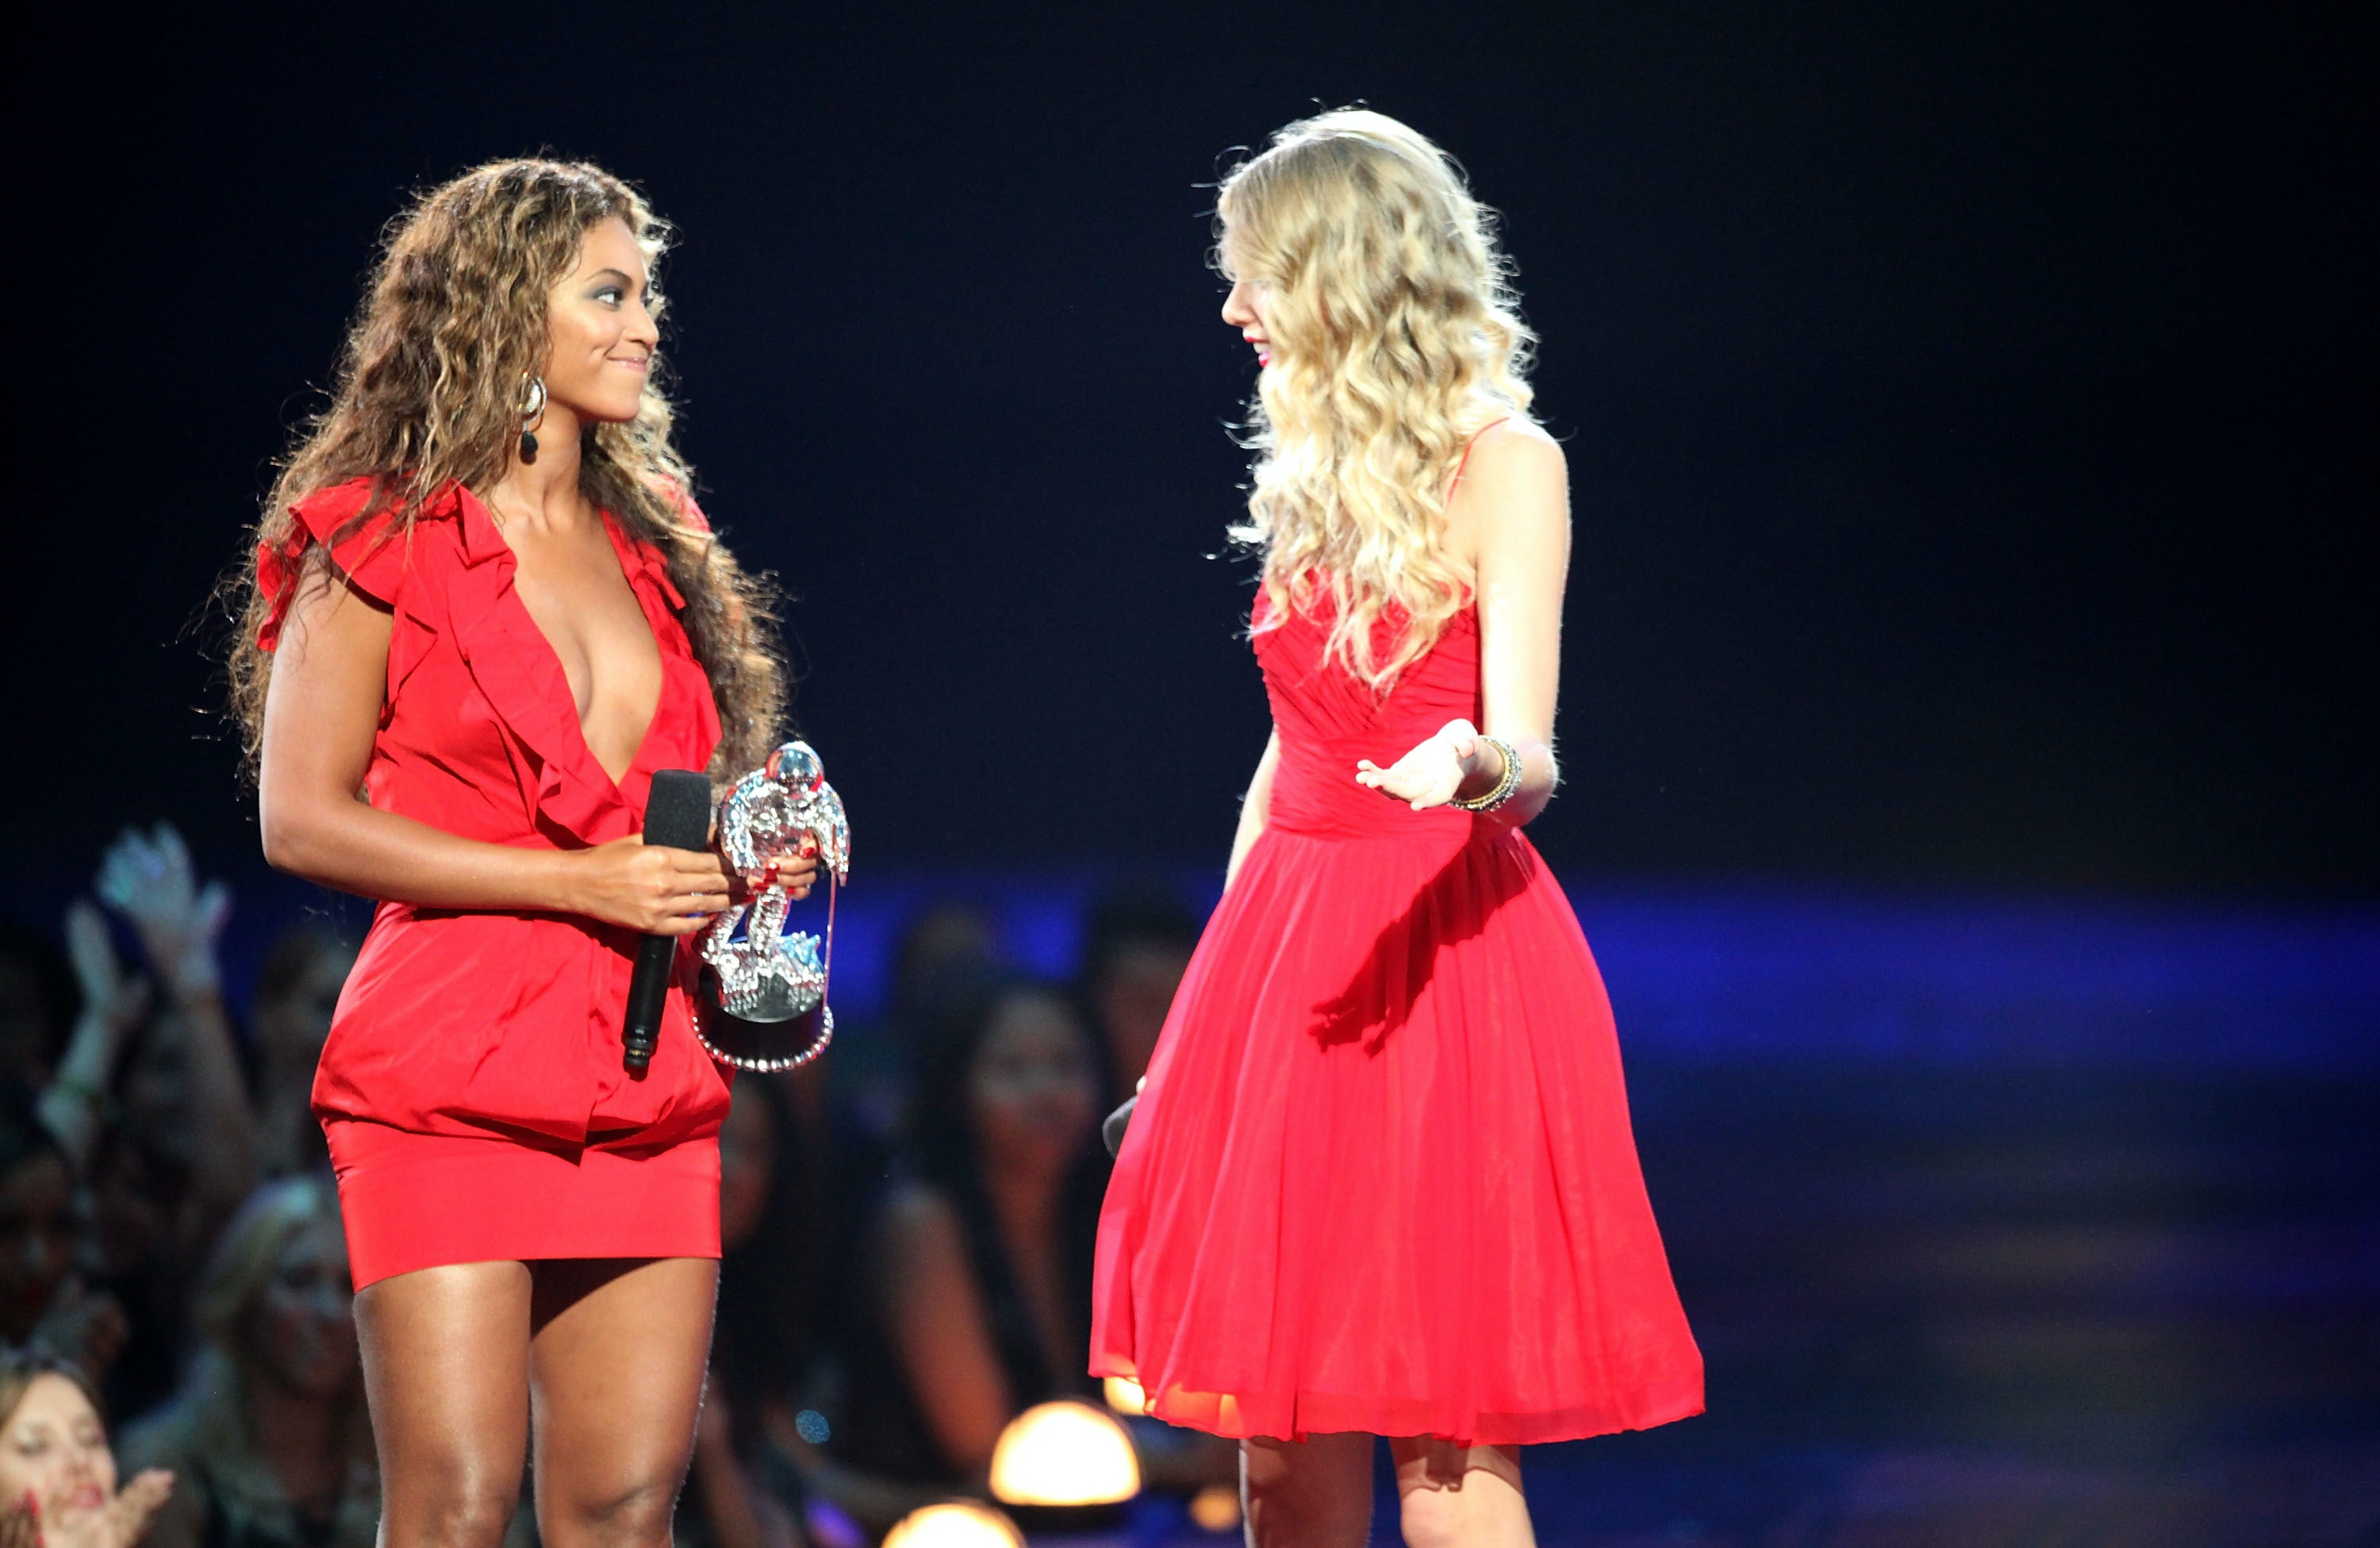 Beyonce S Reaction To Kanye West Interrupting Taylor Swift At The 2009 Vmas Was Really Emotional